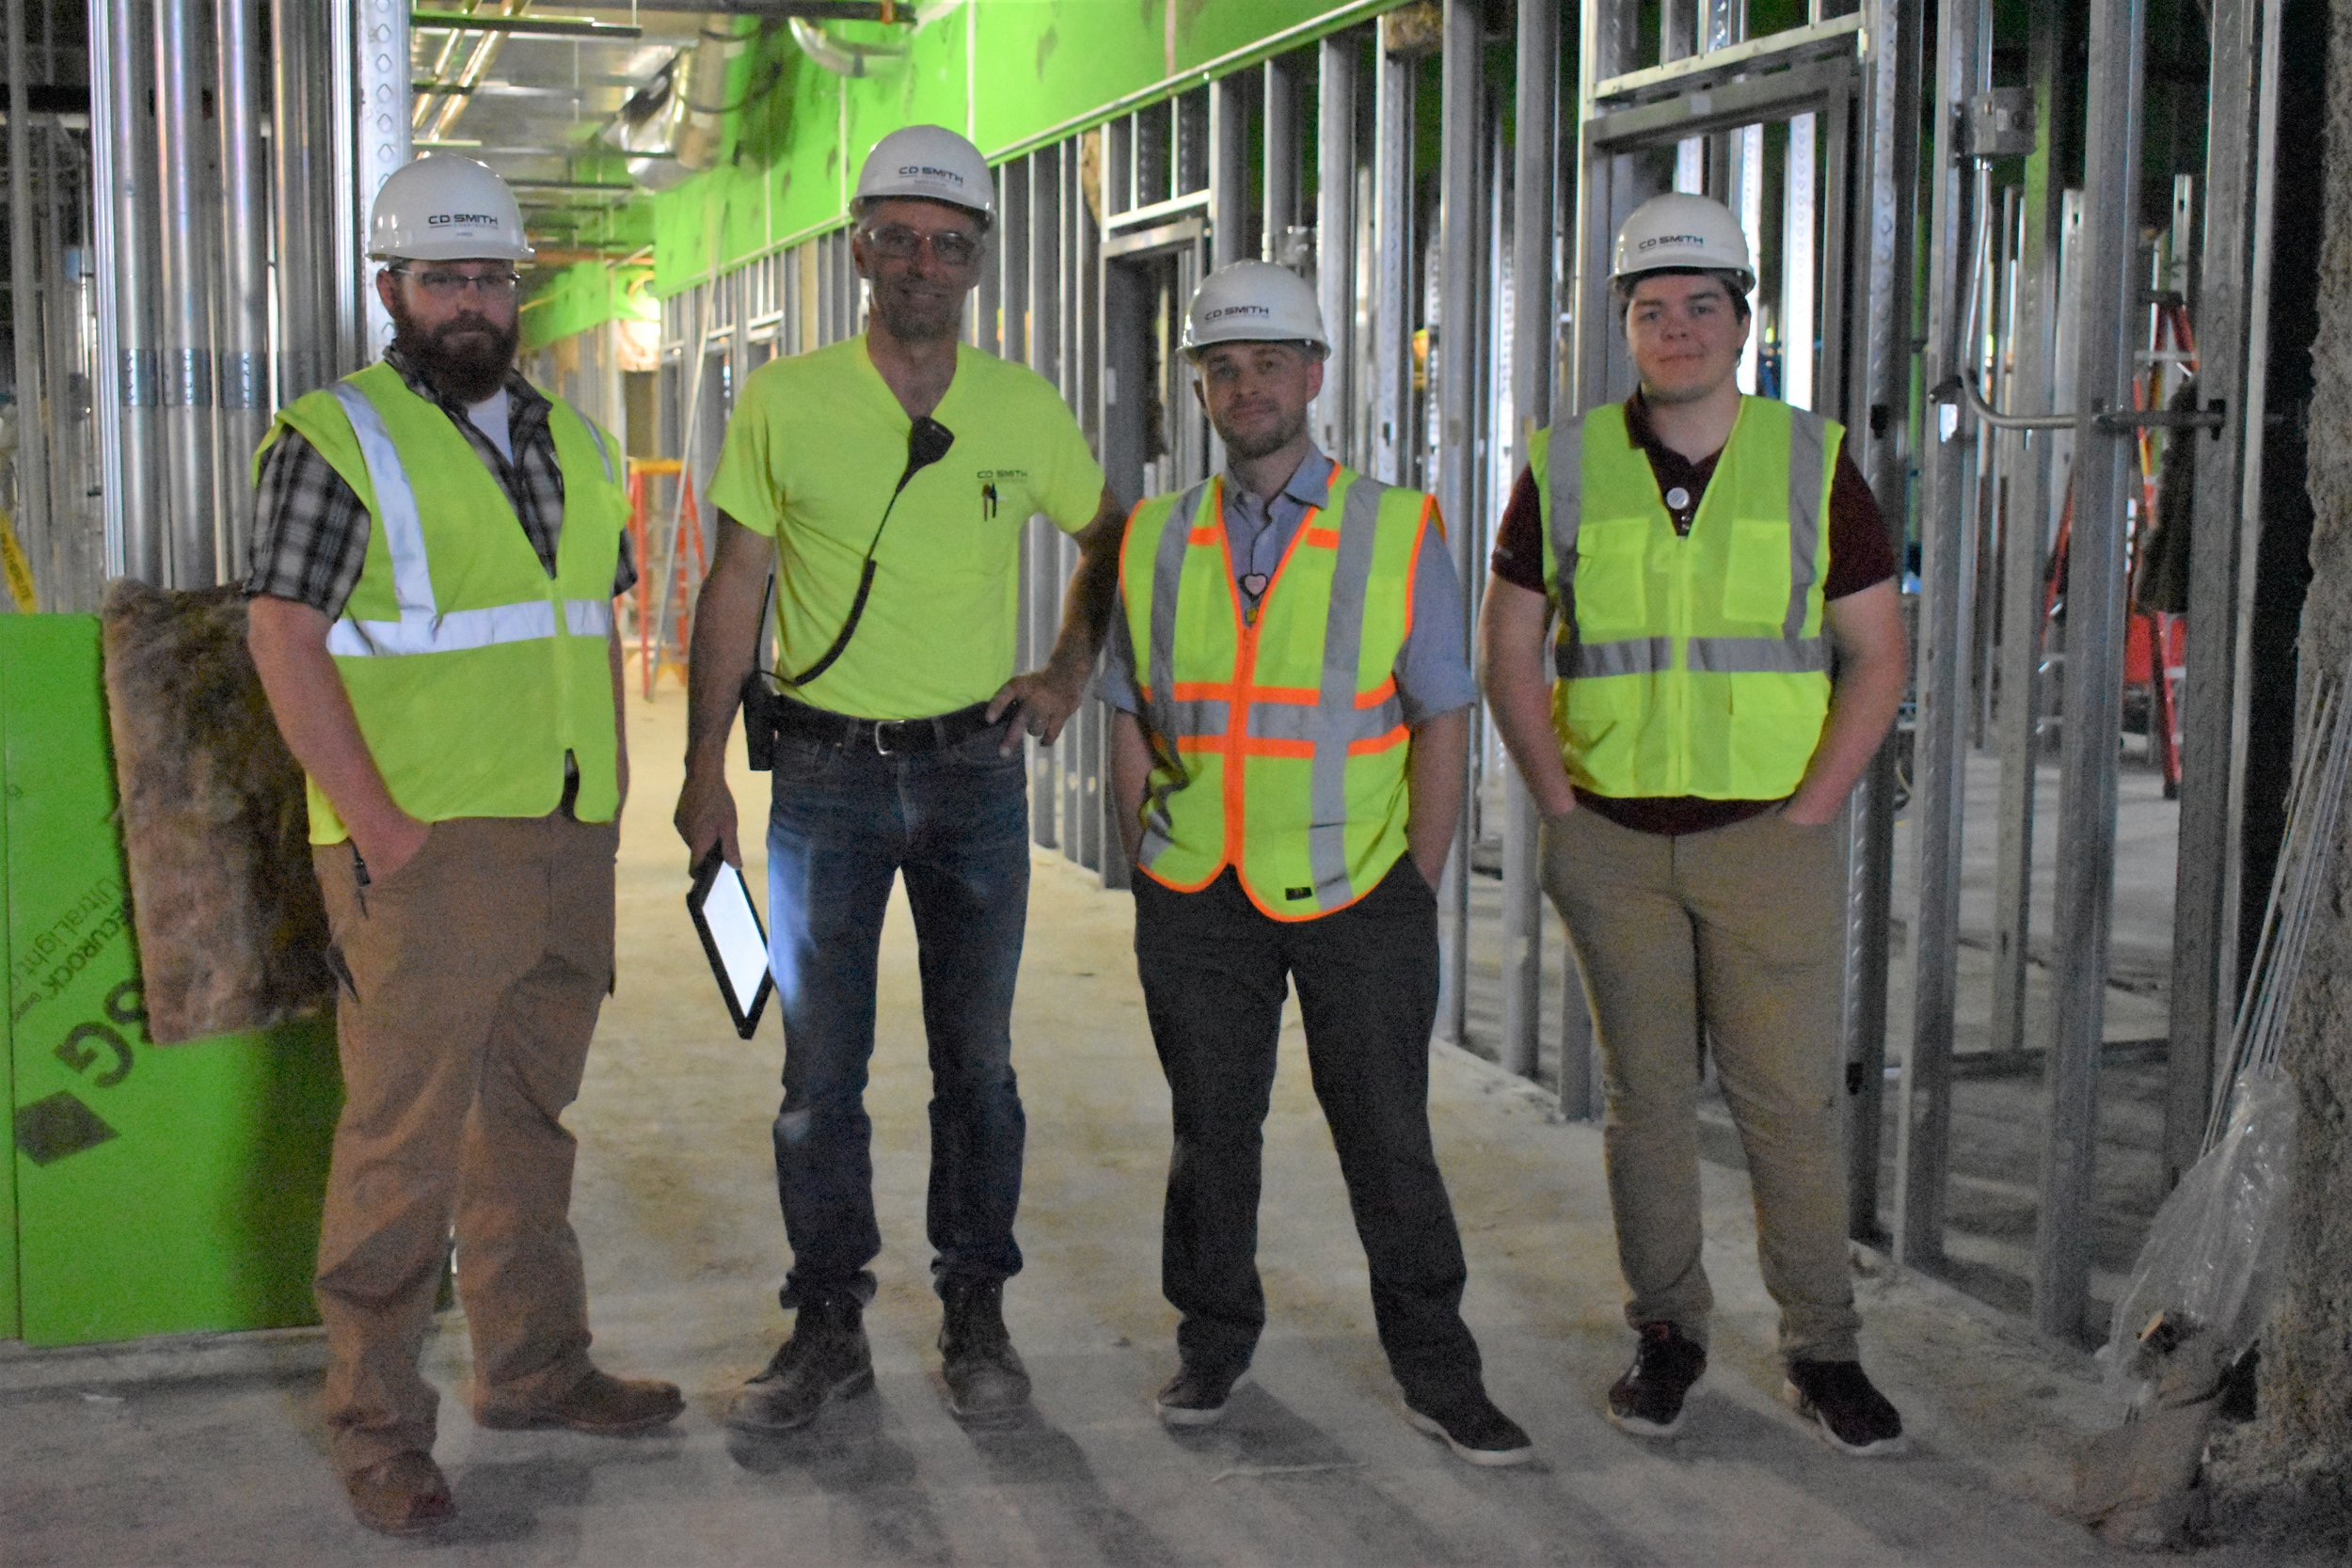 Pictured L to R, Director of Facility Operations-Aaron Hammer, CD Smith Construction Company Site Superintendent-Wayne Holum, Director of Marketing & Public Relations- Dan Howard and his summer inter- Jacob Bennish.